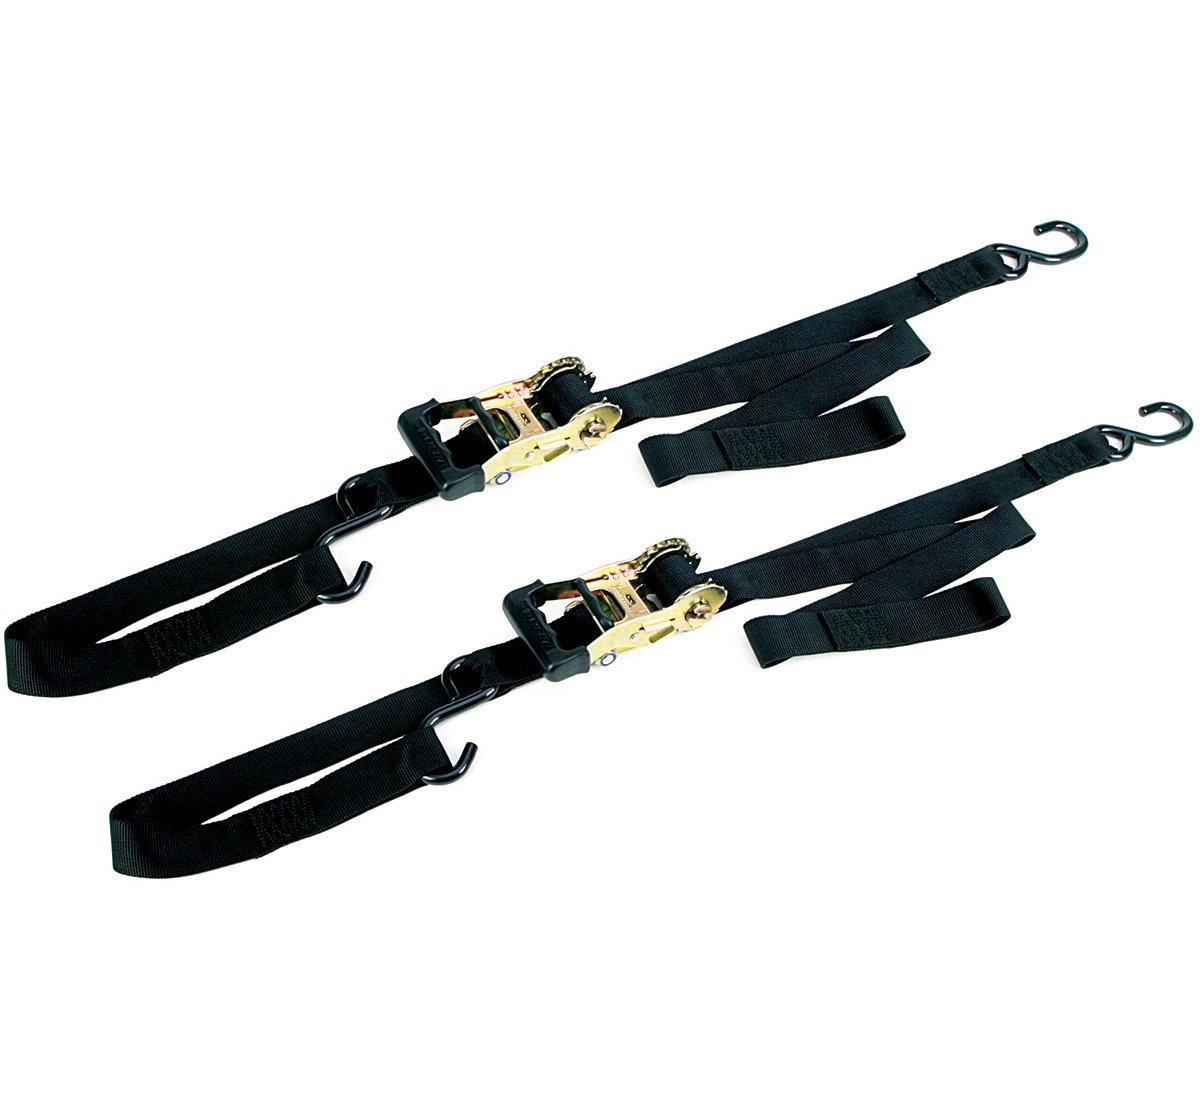 Ancra Big Bike Tie Down Set, Integra Ratchet Buckle, Black